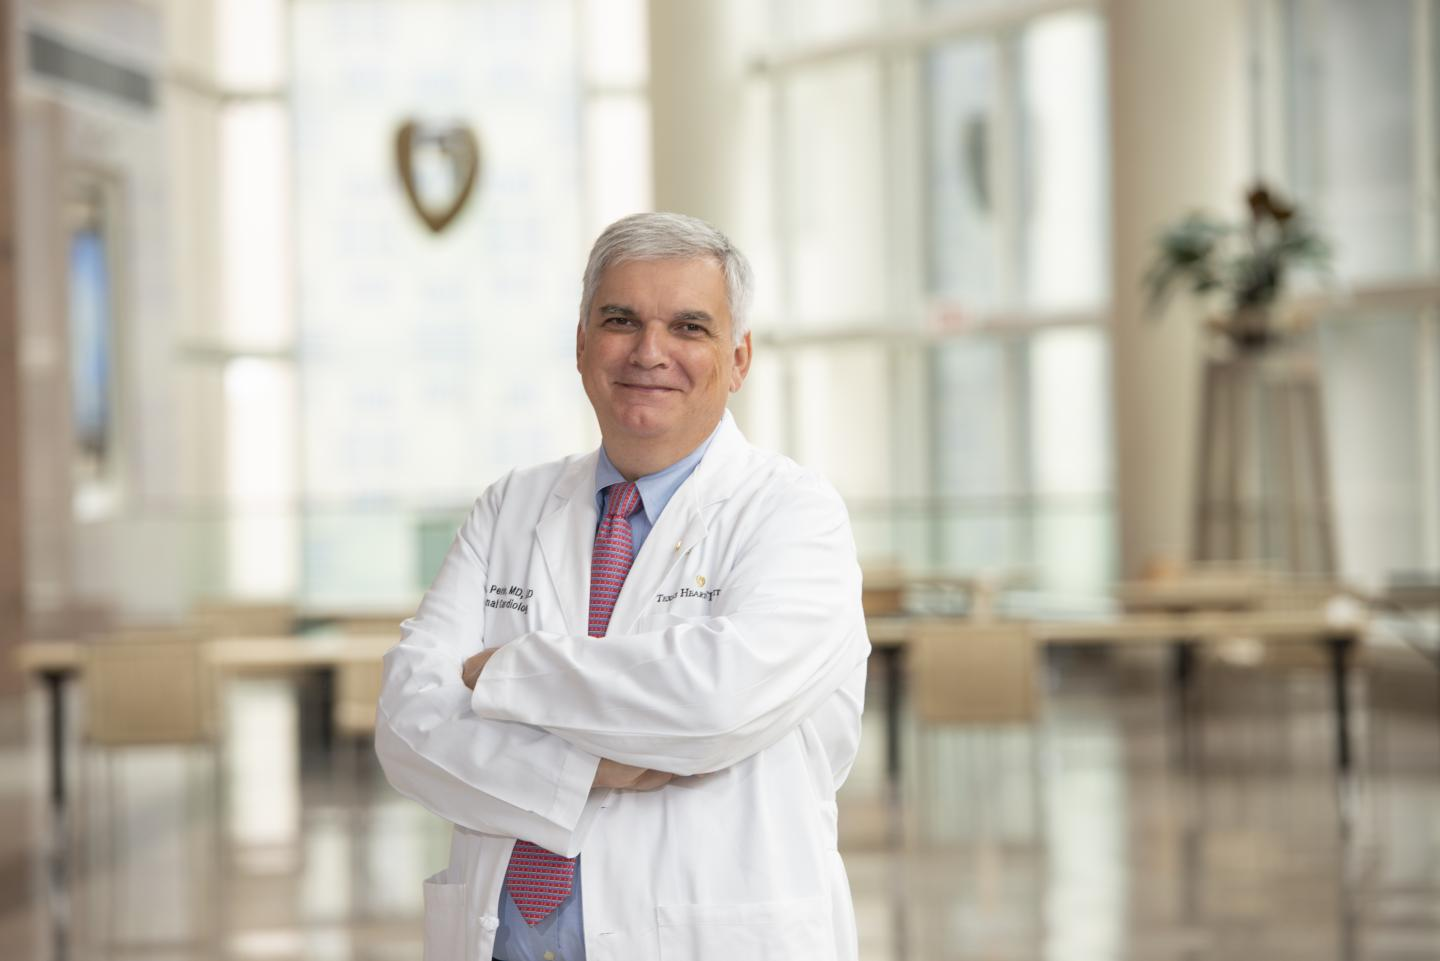 Texas Heart Institute to Participate in Global Stem Cell Study to Treat ARDS due to COVID-19